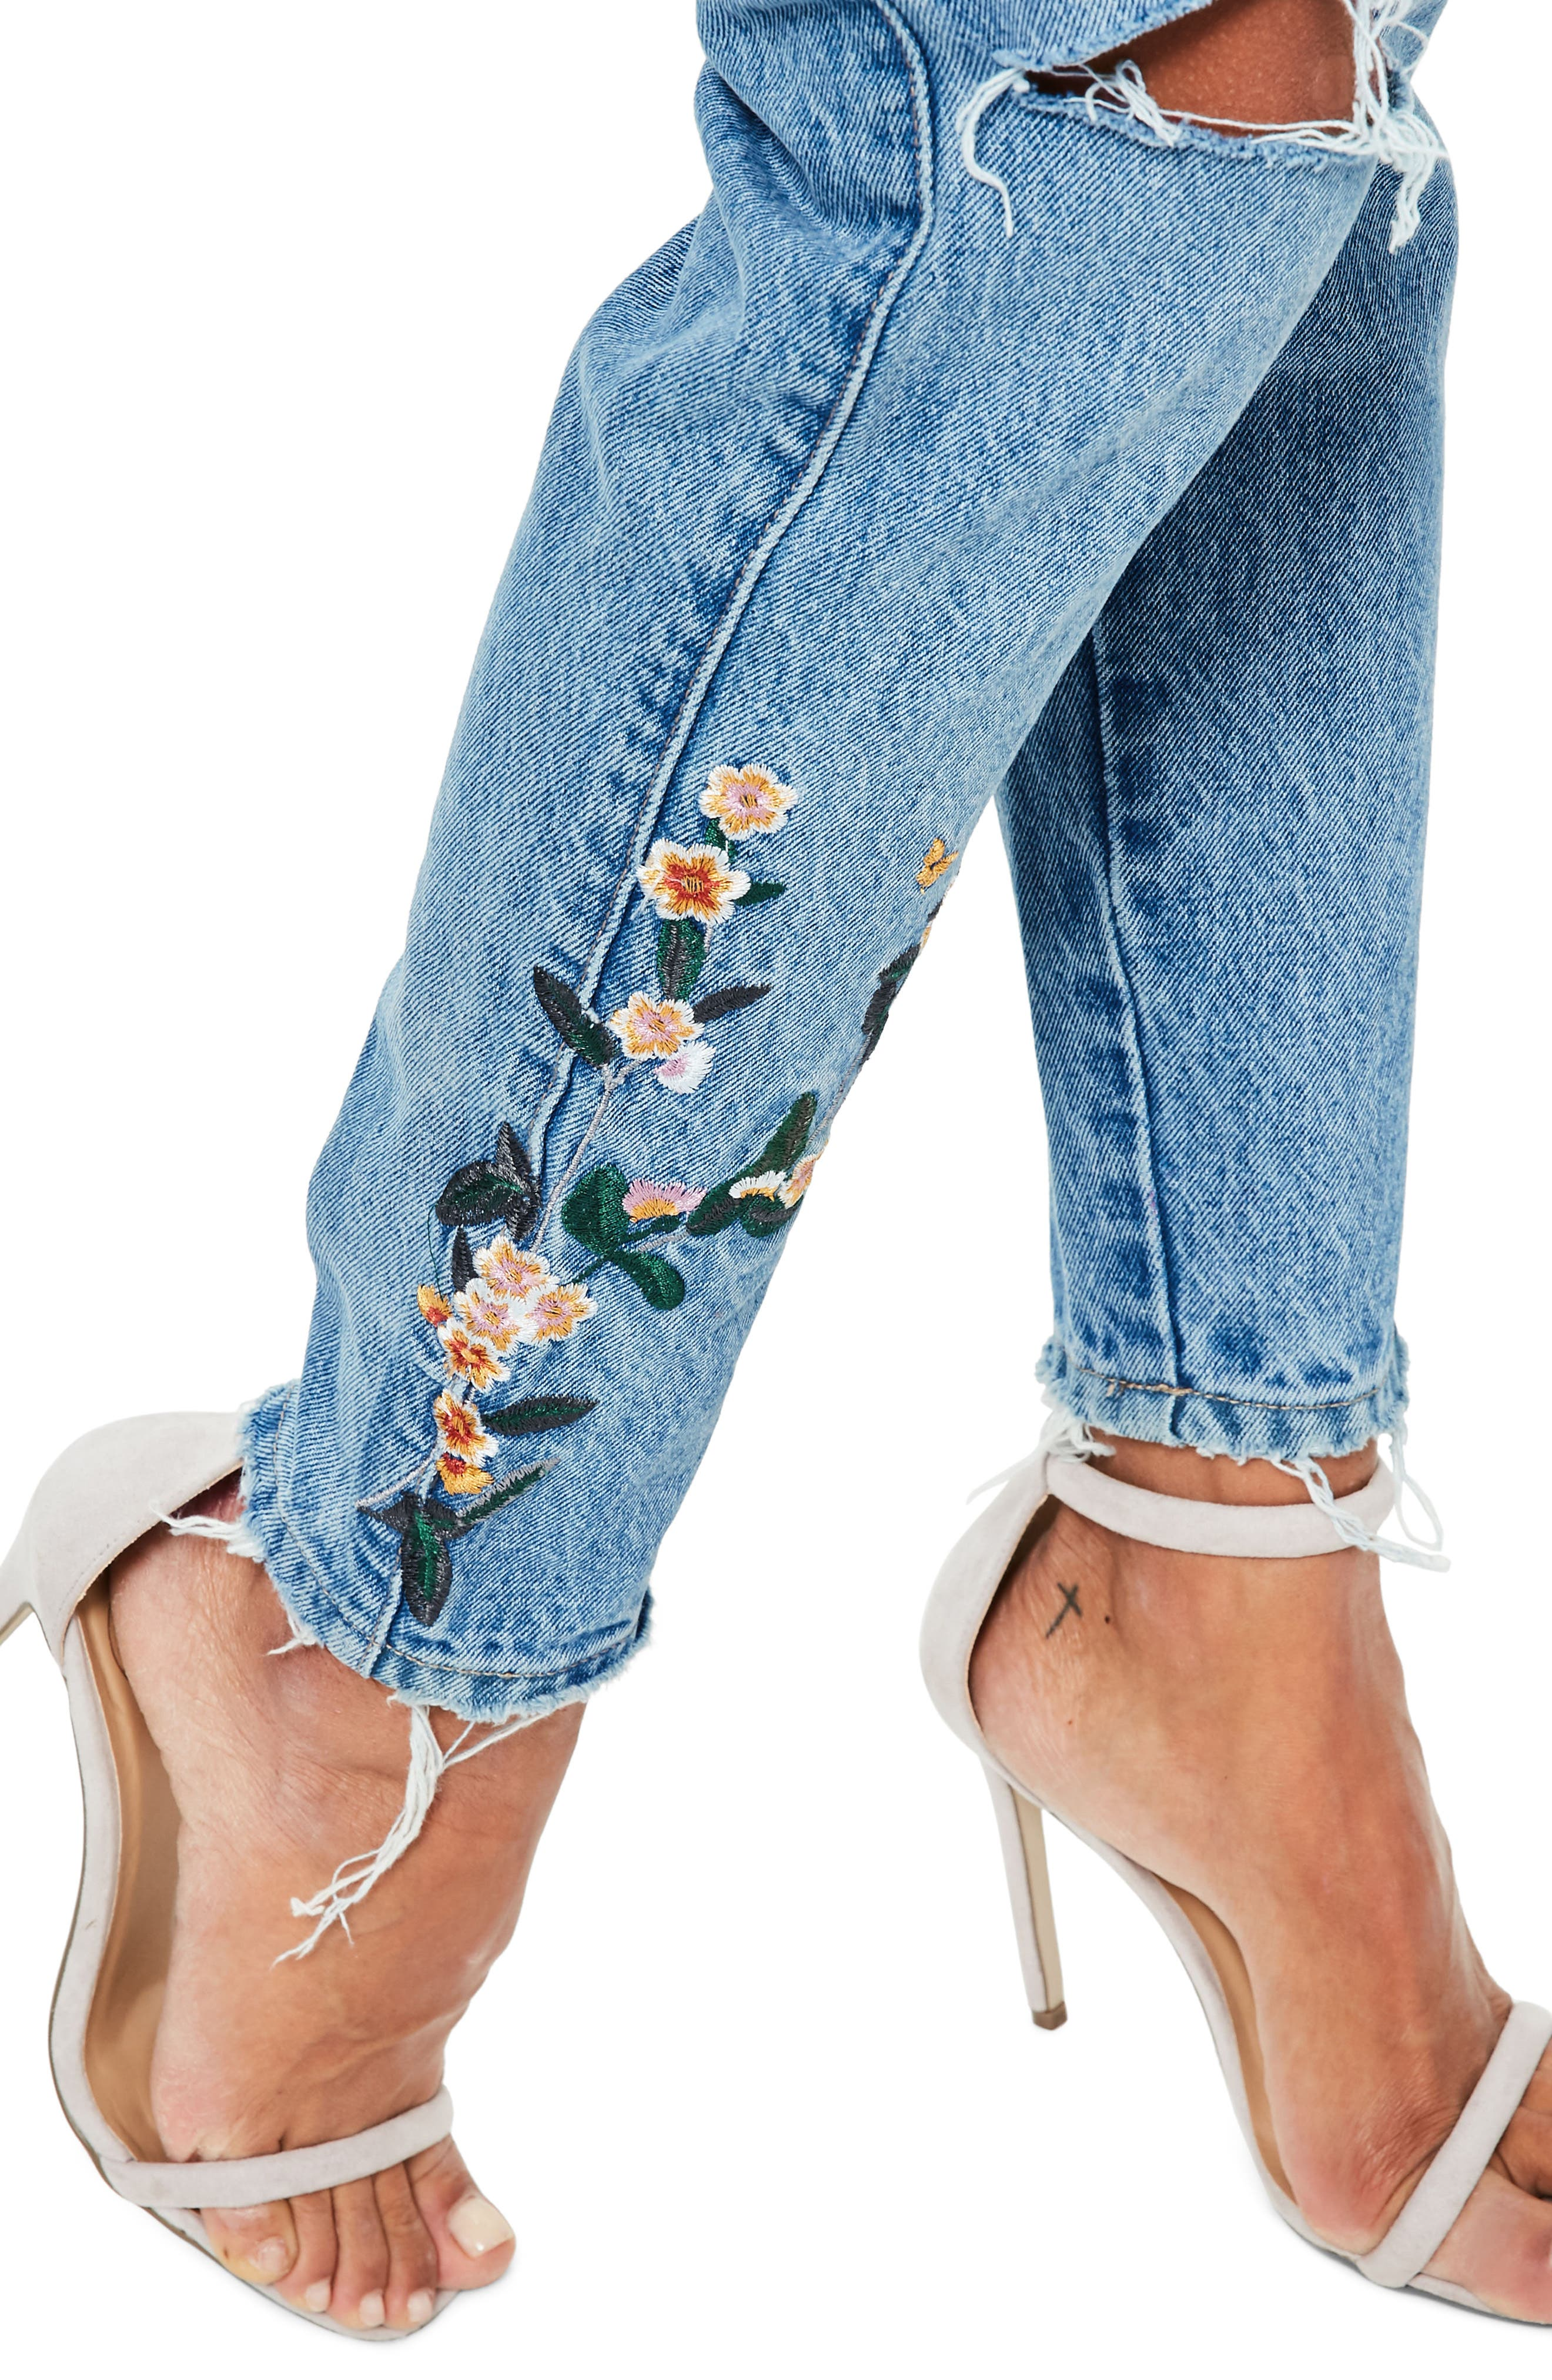 Riot Ripped High Waist Embroidered Jeans,                             Alternate thumbnail 4, color,                             Blue